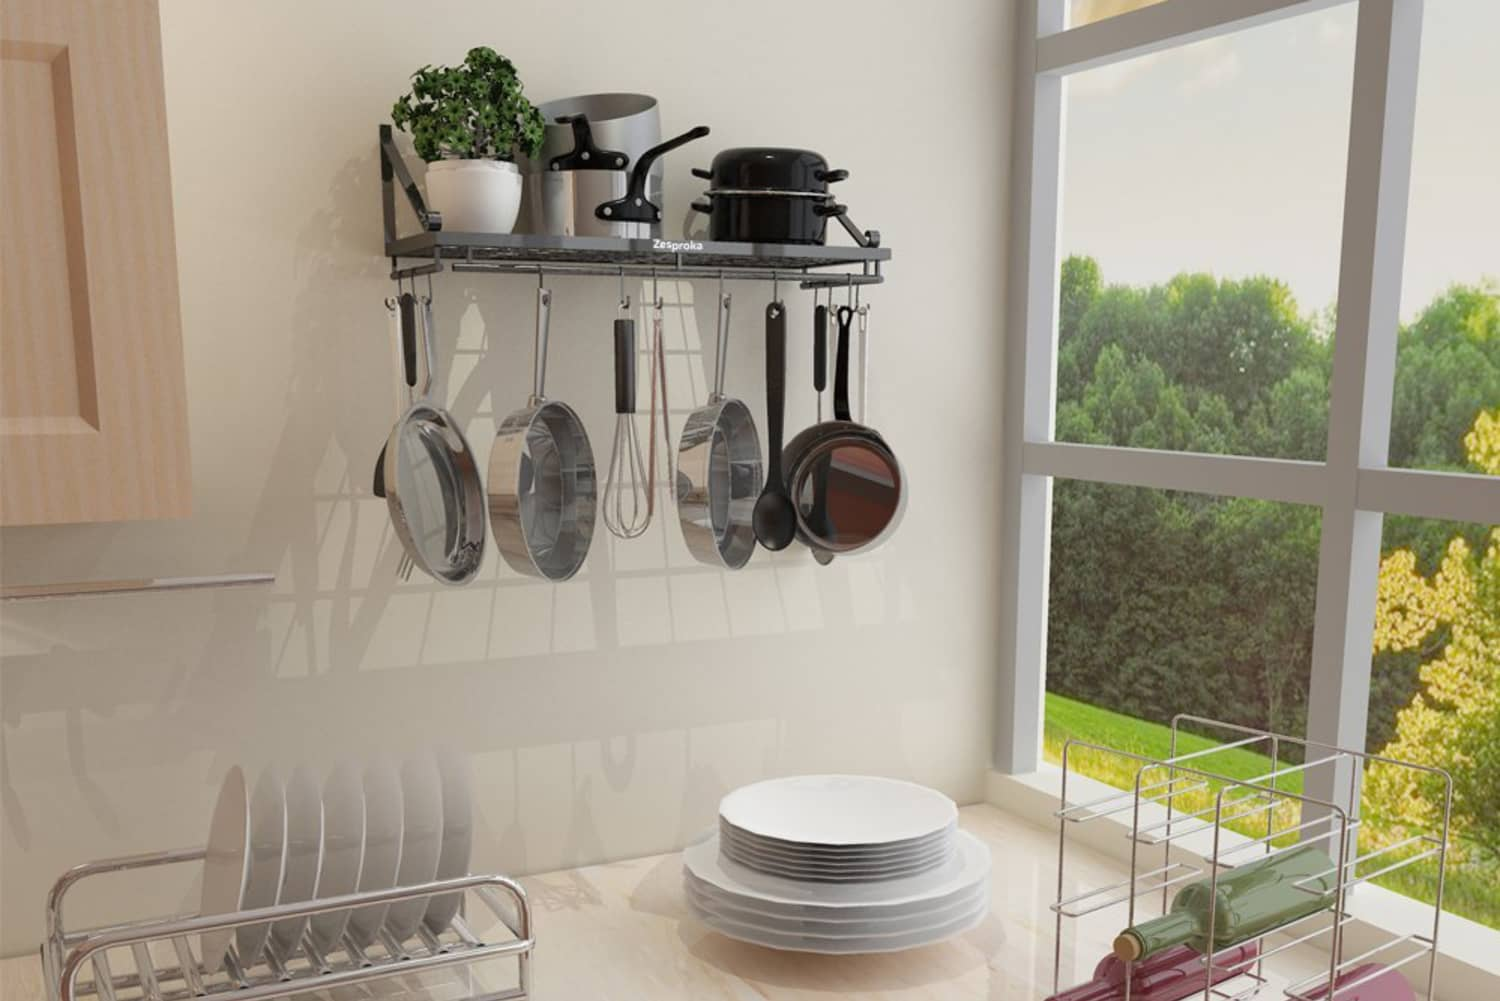 The Storage Multi-tasker Your Struggling Kitchen Needs